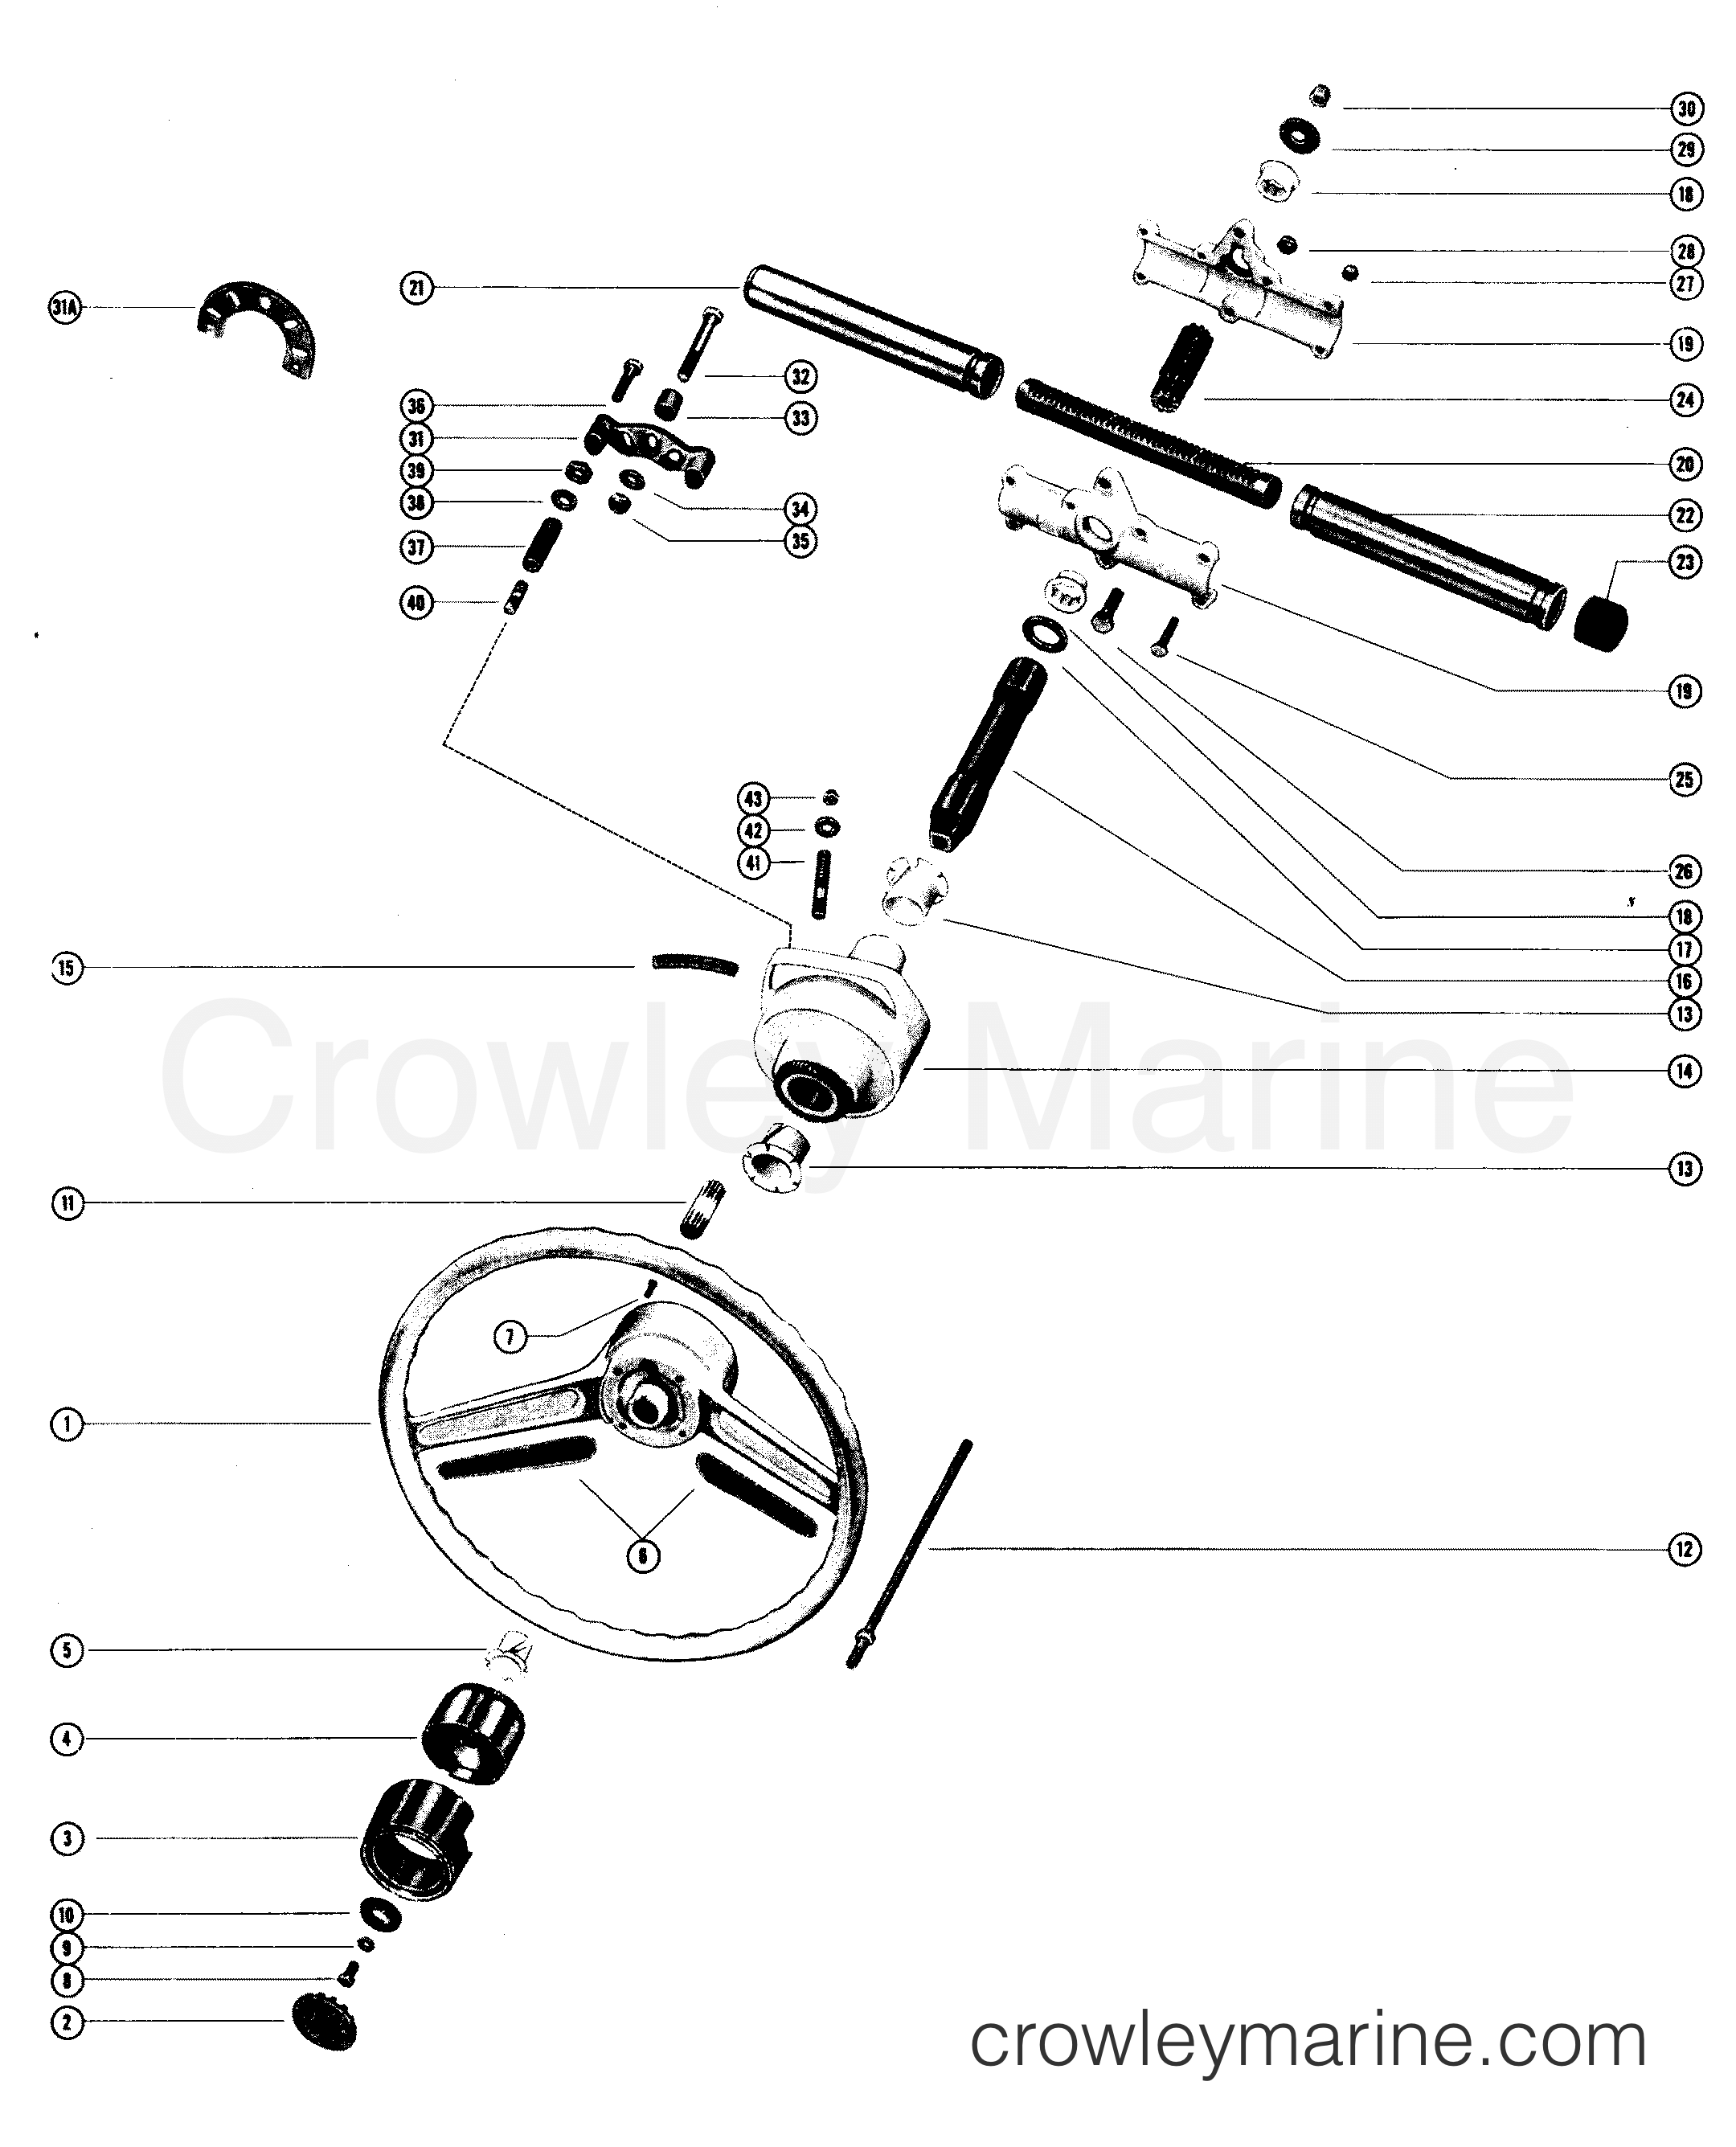 Diagram Of 1975 Rd200b Yamaha Motorcycle Handle Wire Diagram And Parts